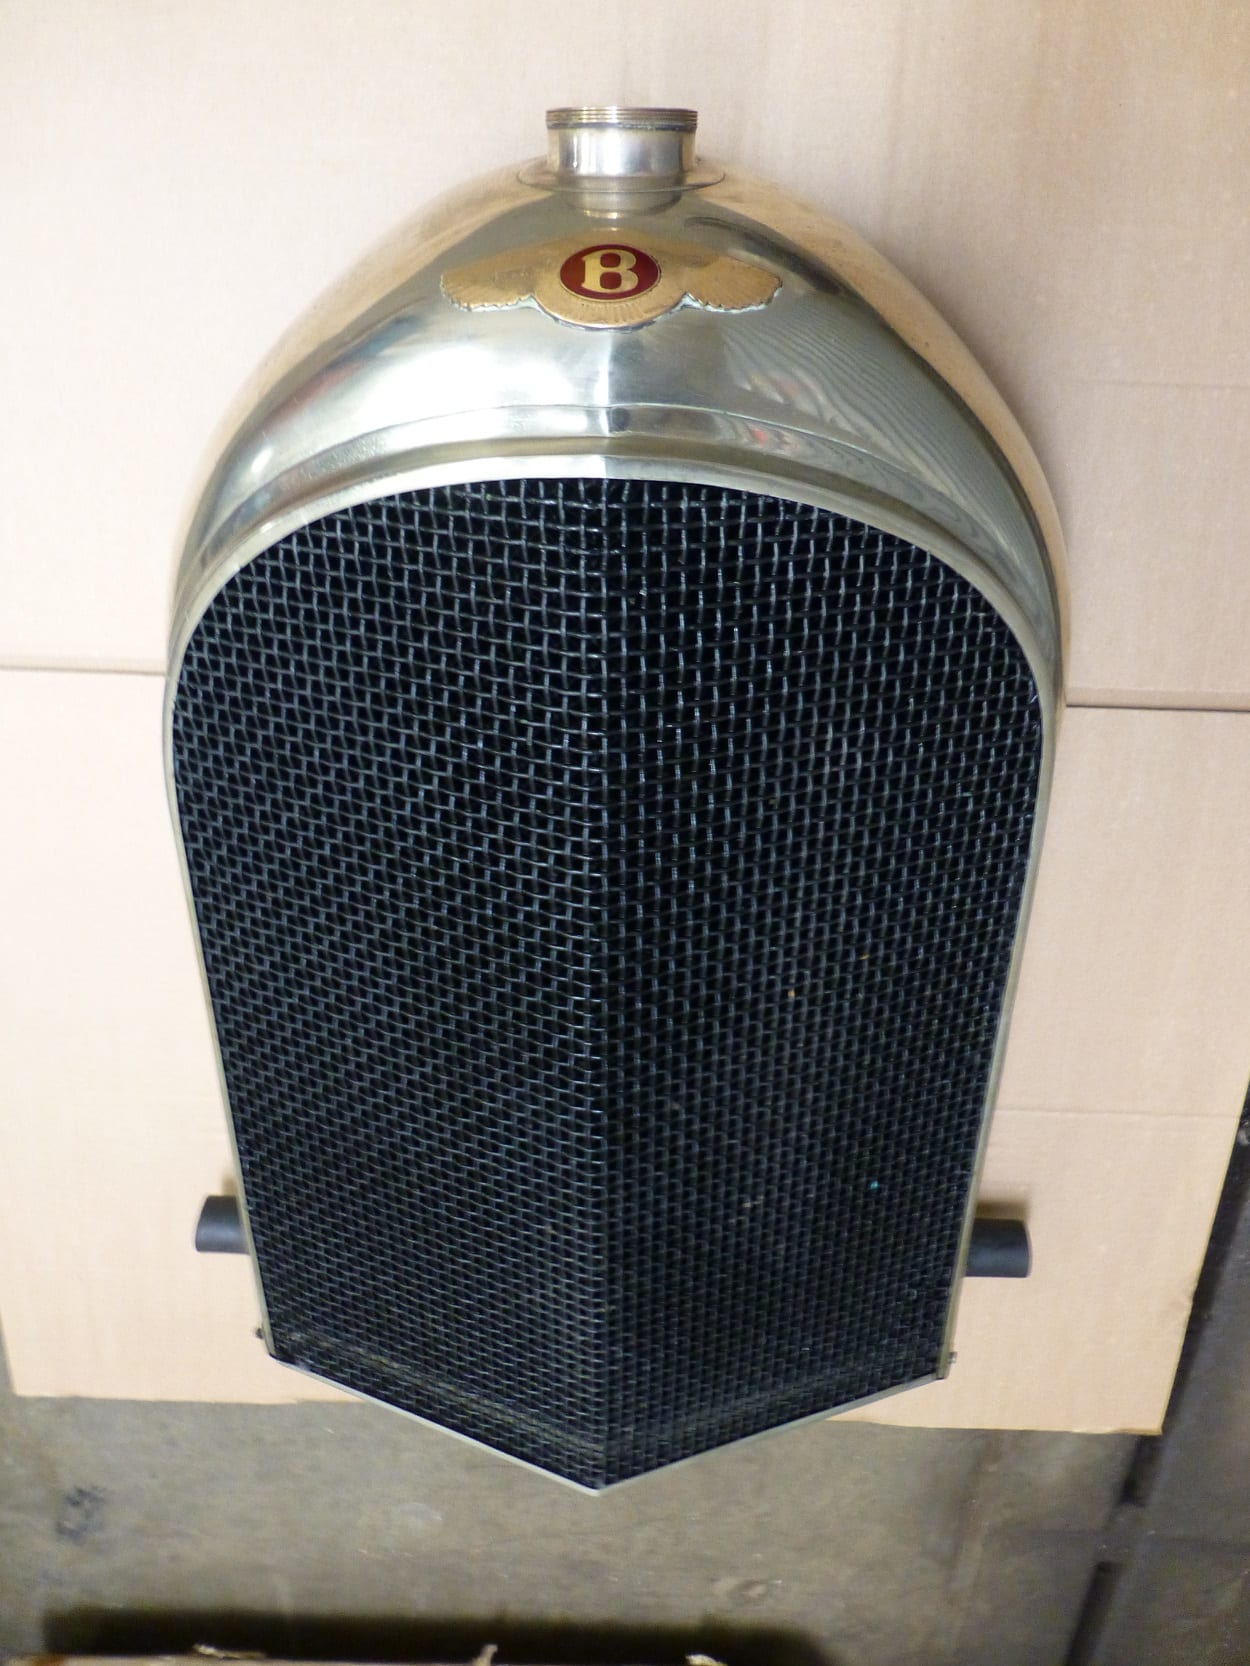 Bentley 3.0 1934 Radiator Checked for Leaks Indian Queens Cornwall